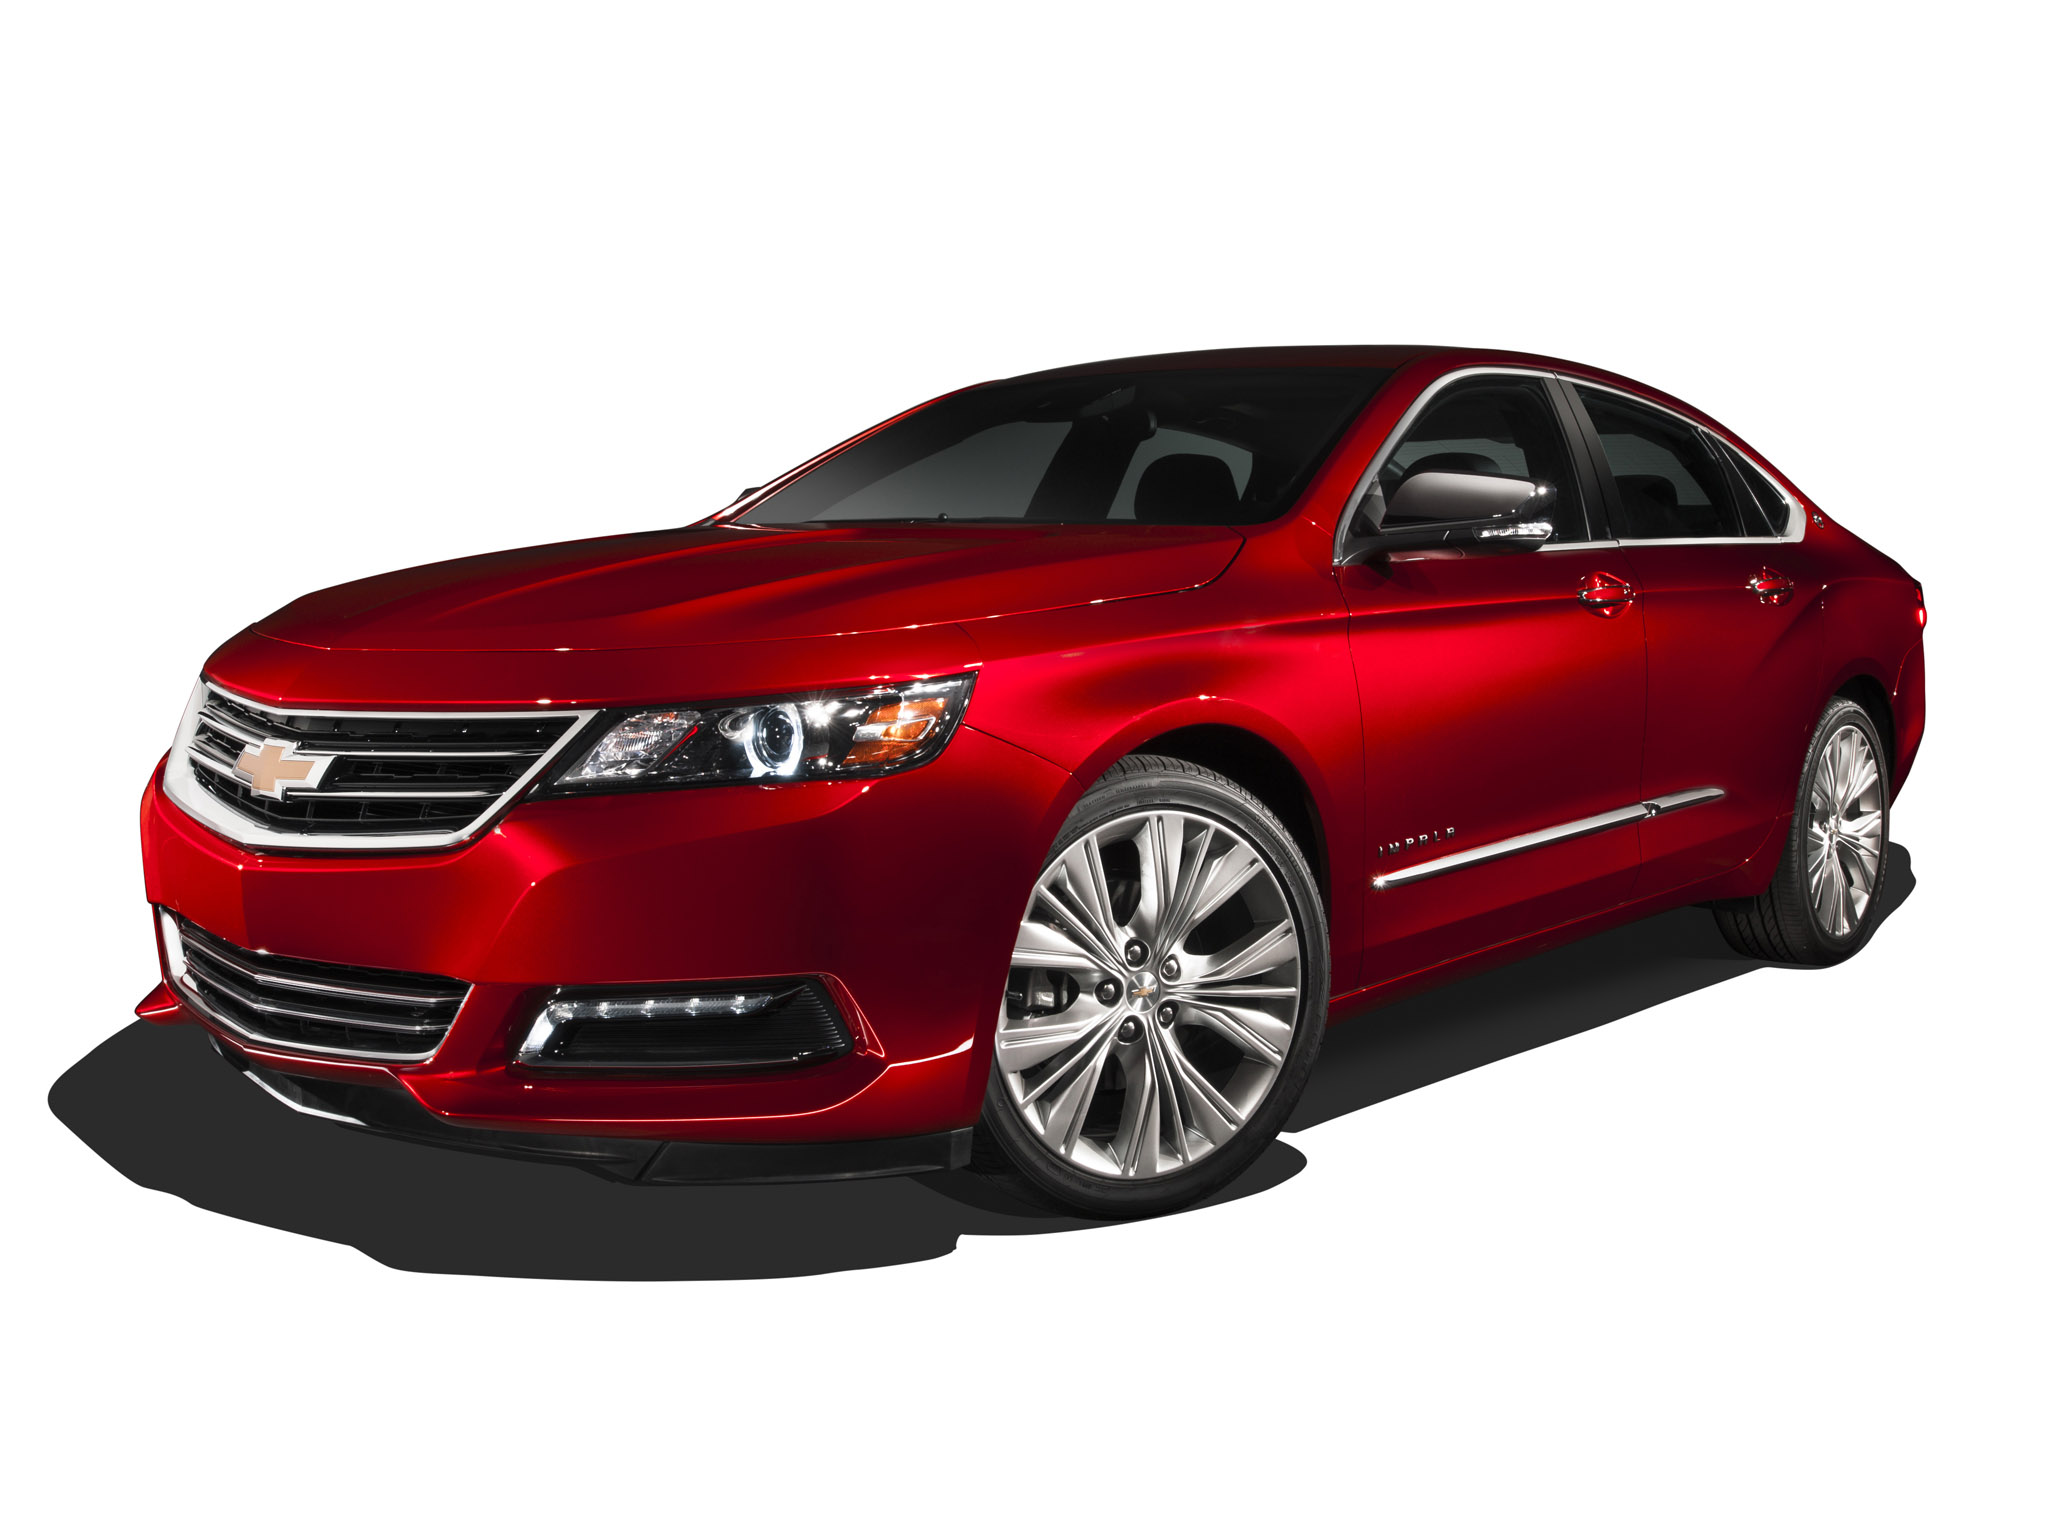 chevrolet impala ltz 2013 chevrolet impala ltz 2013 photo 02 car in pictures car photo gallery. Black Bedroom Furniture Sets. Home Design Ideas